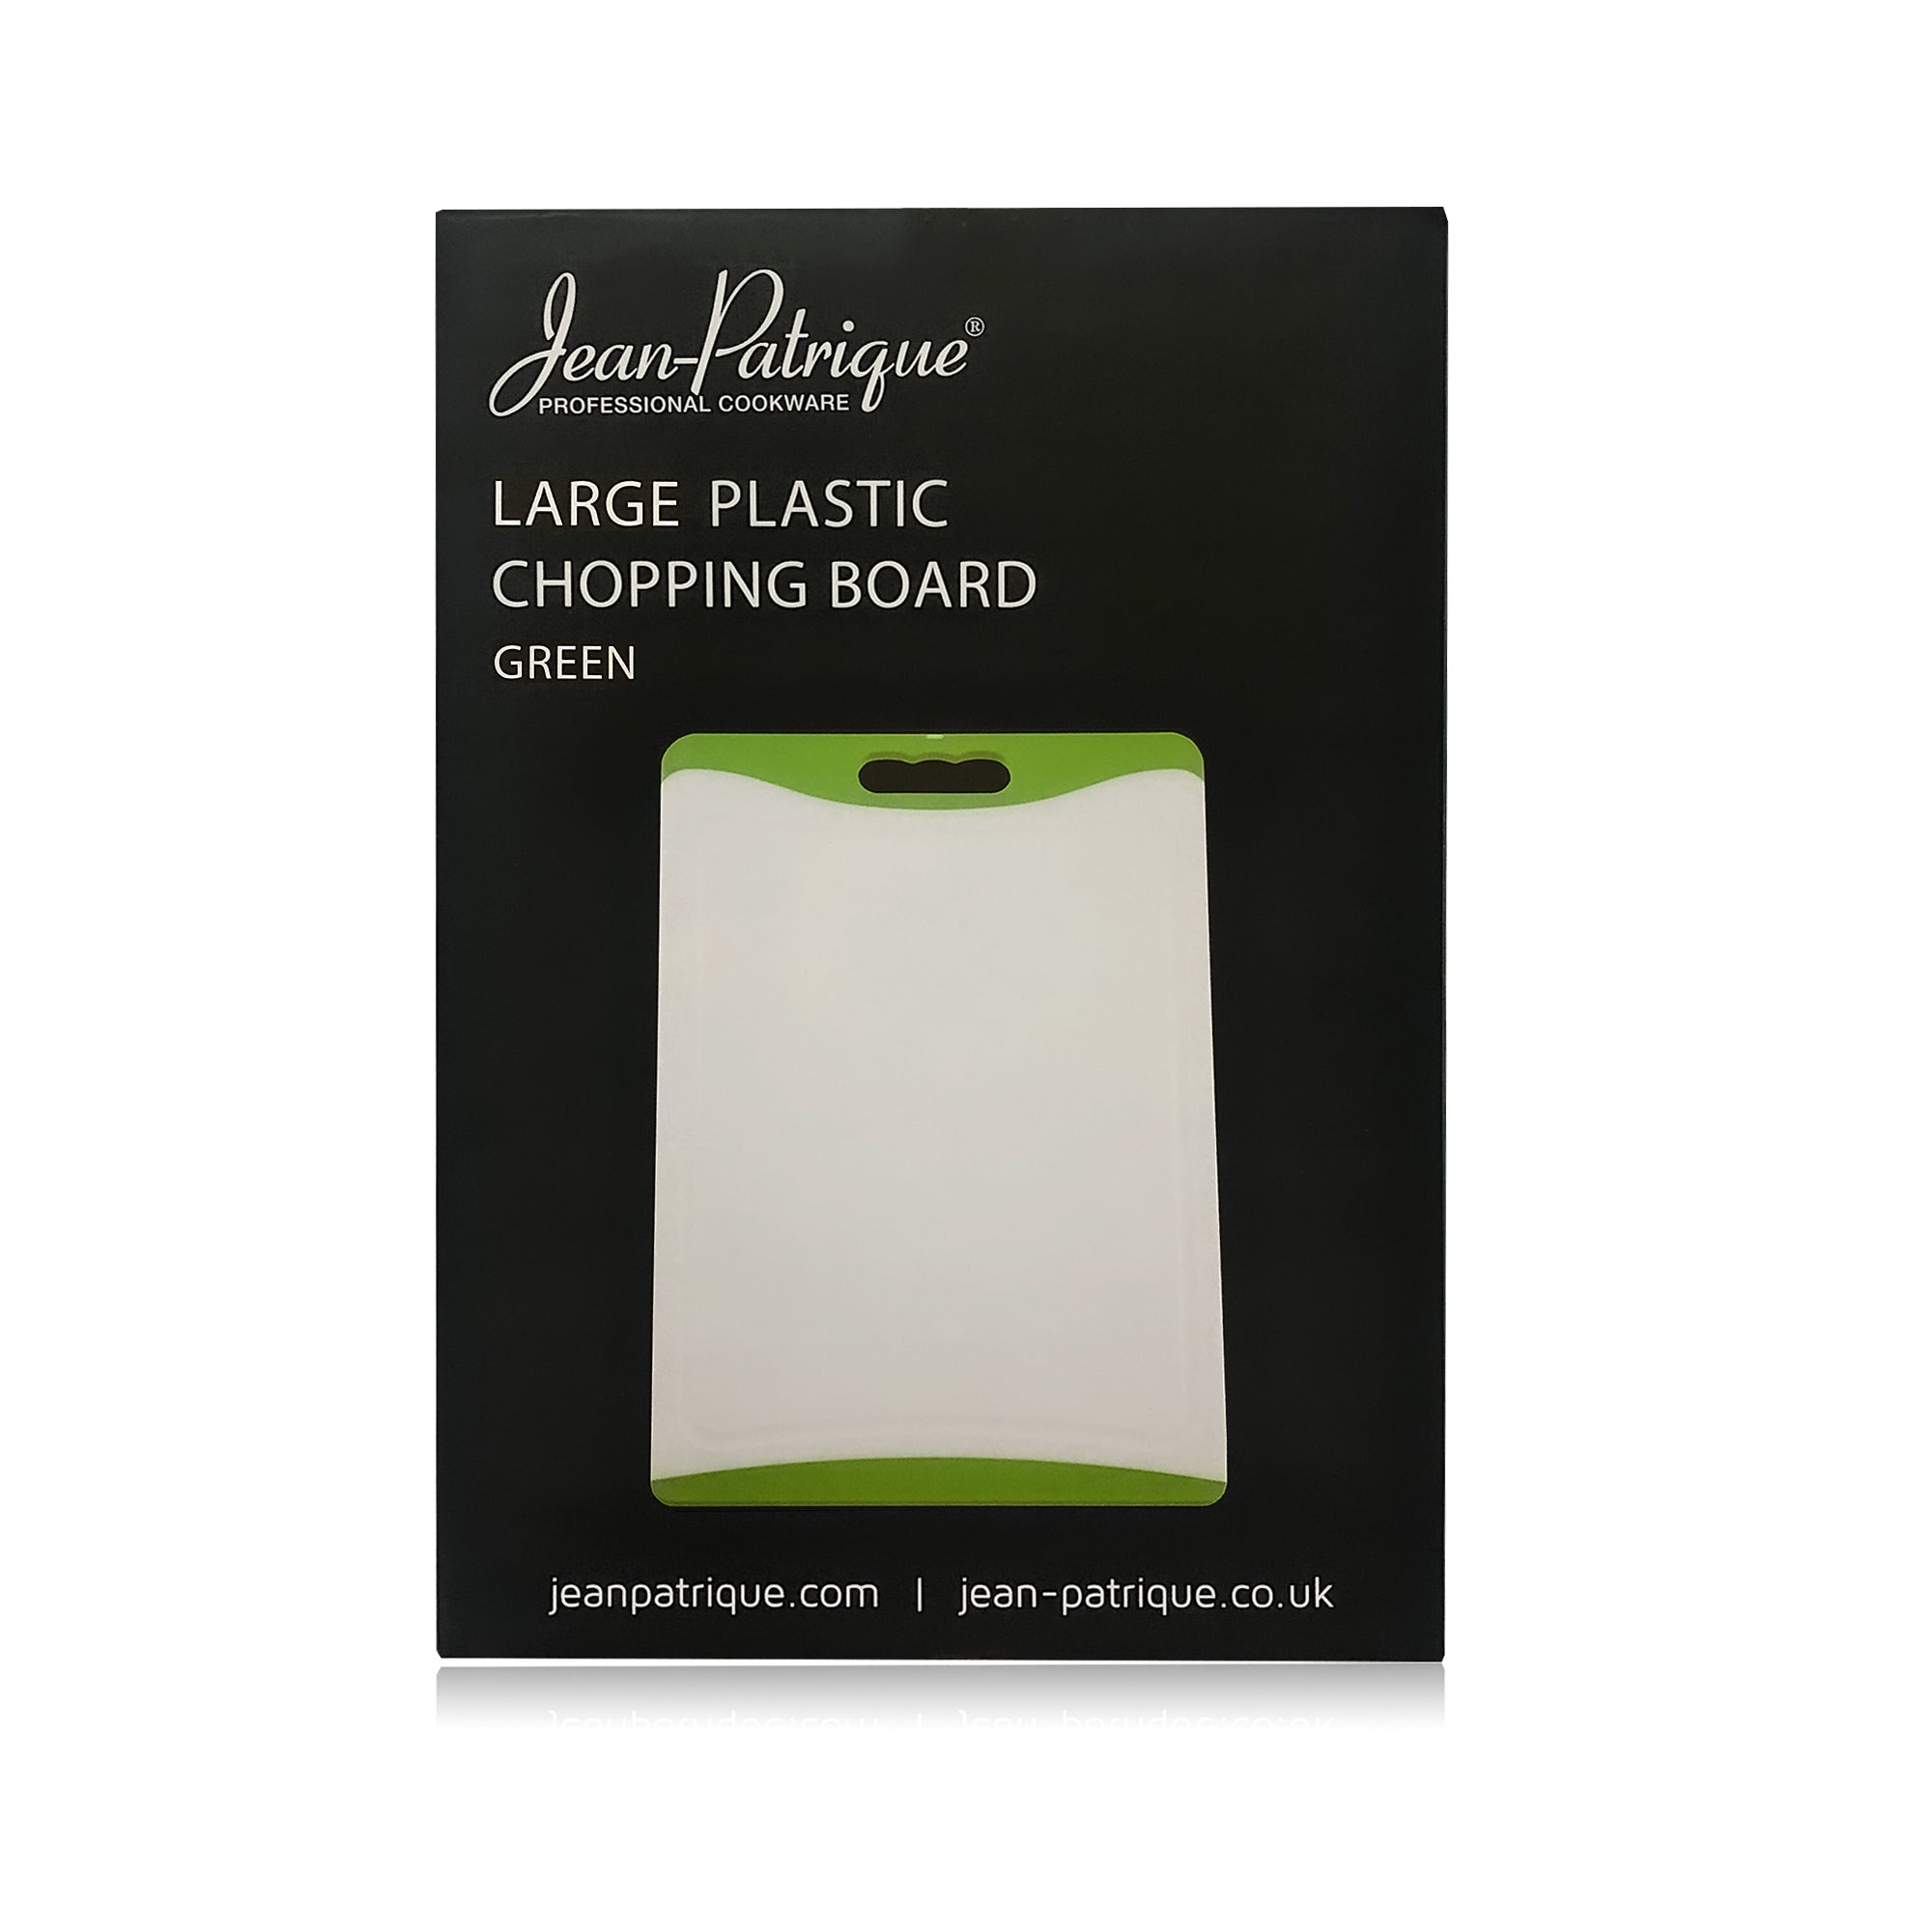 Large Plastic Chopping Board - Green 43cm